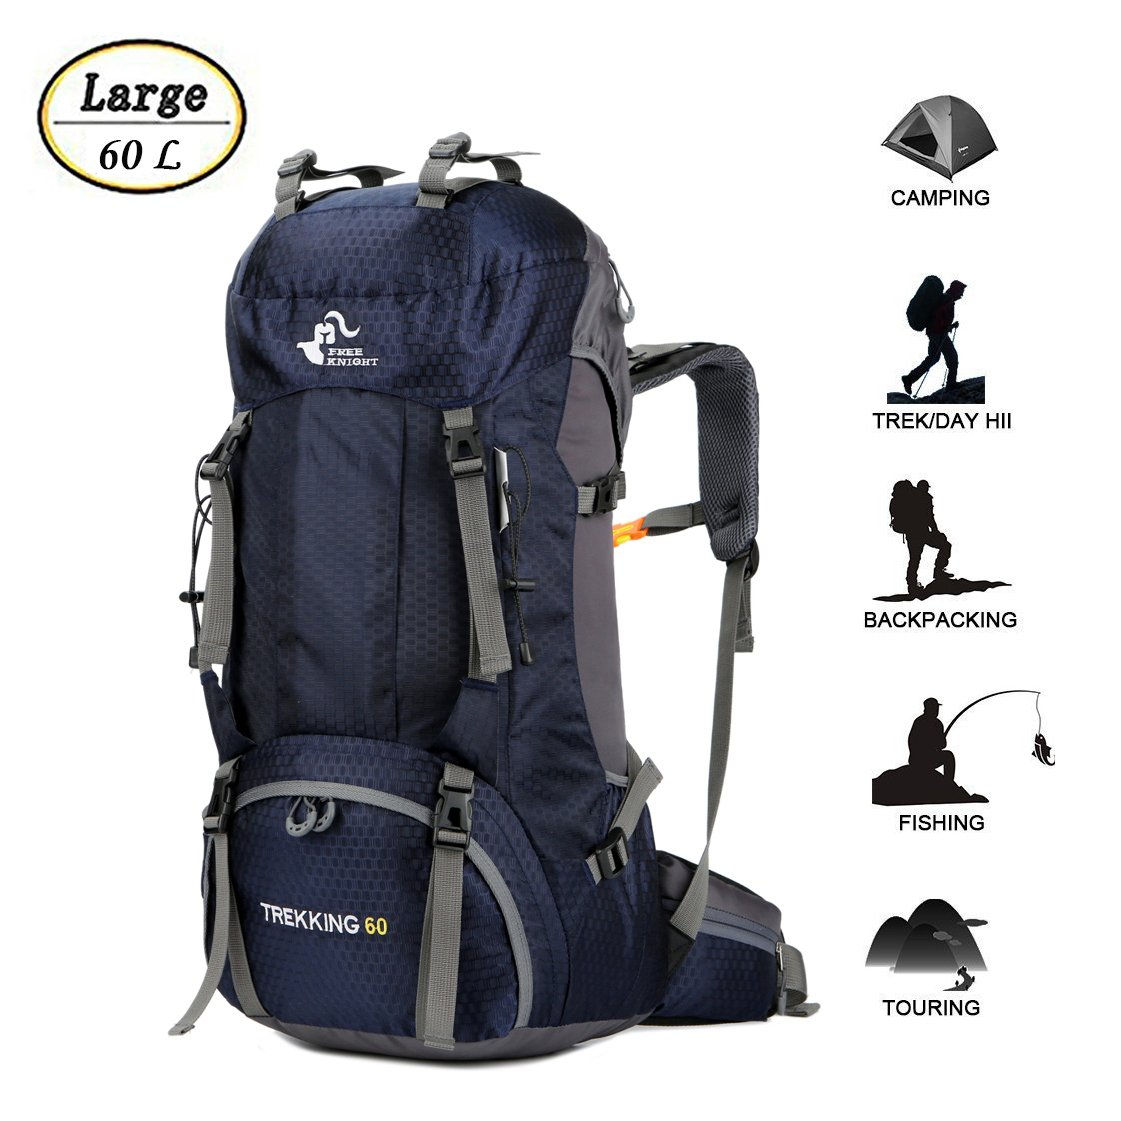 60L Waterproof Ultra Lightweight Hiking Backpack with Rain Cover,Outdoor Sport Daypack Travel Bag for Climbing Camping Touring Mountaineering Fishing (Navy Blue)